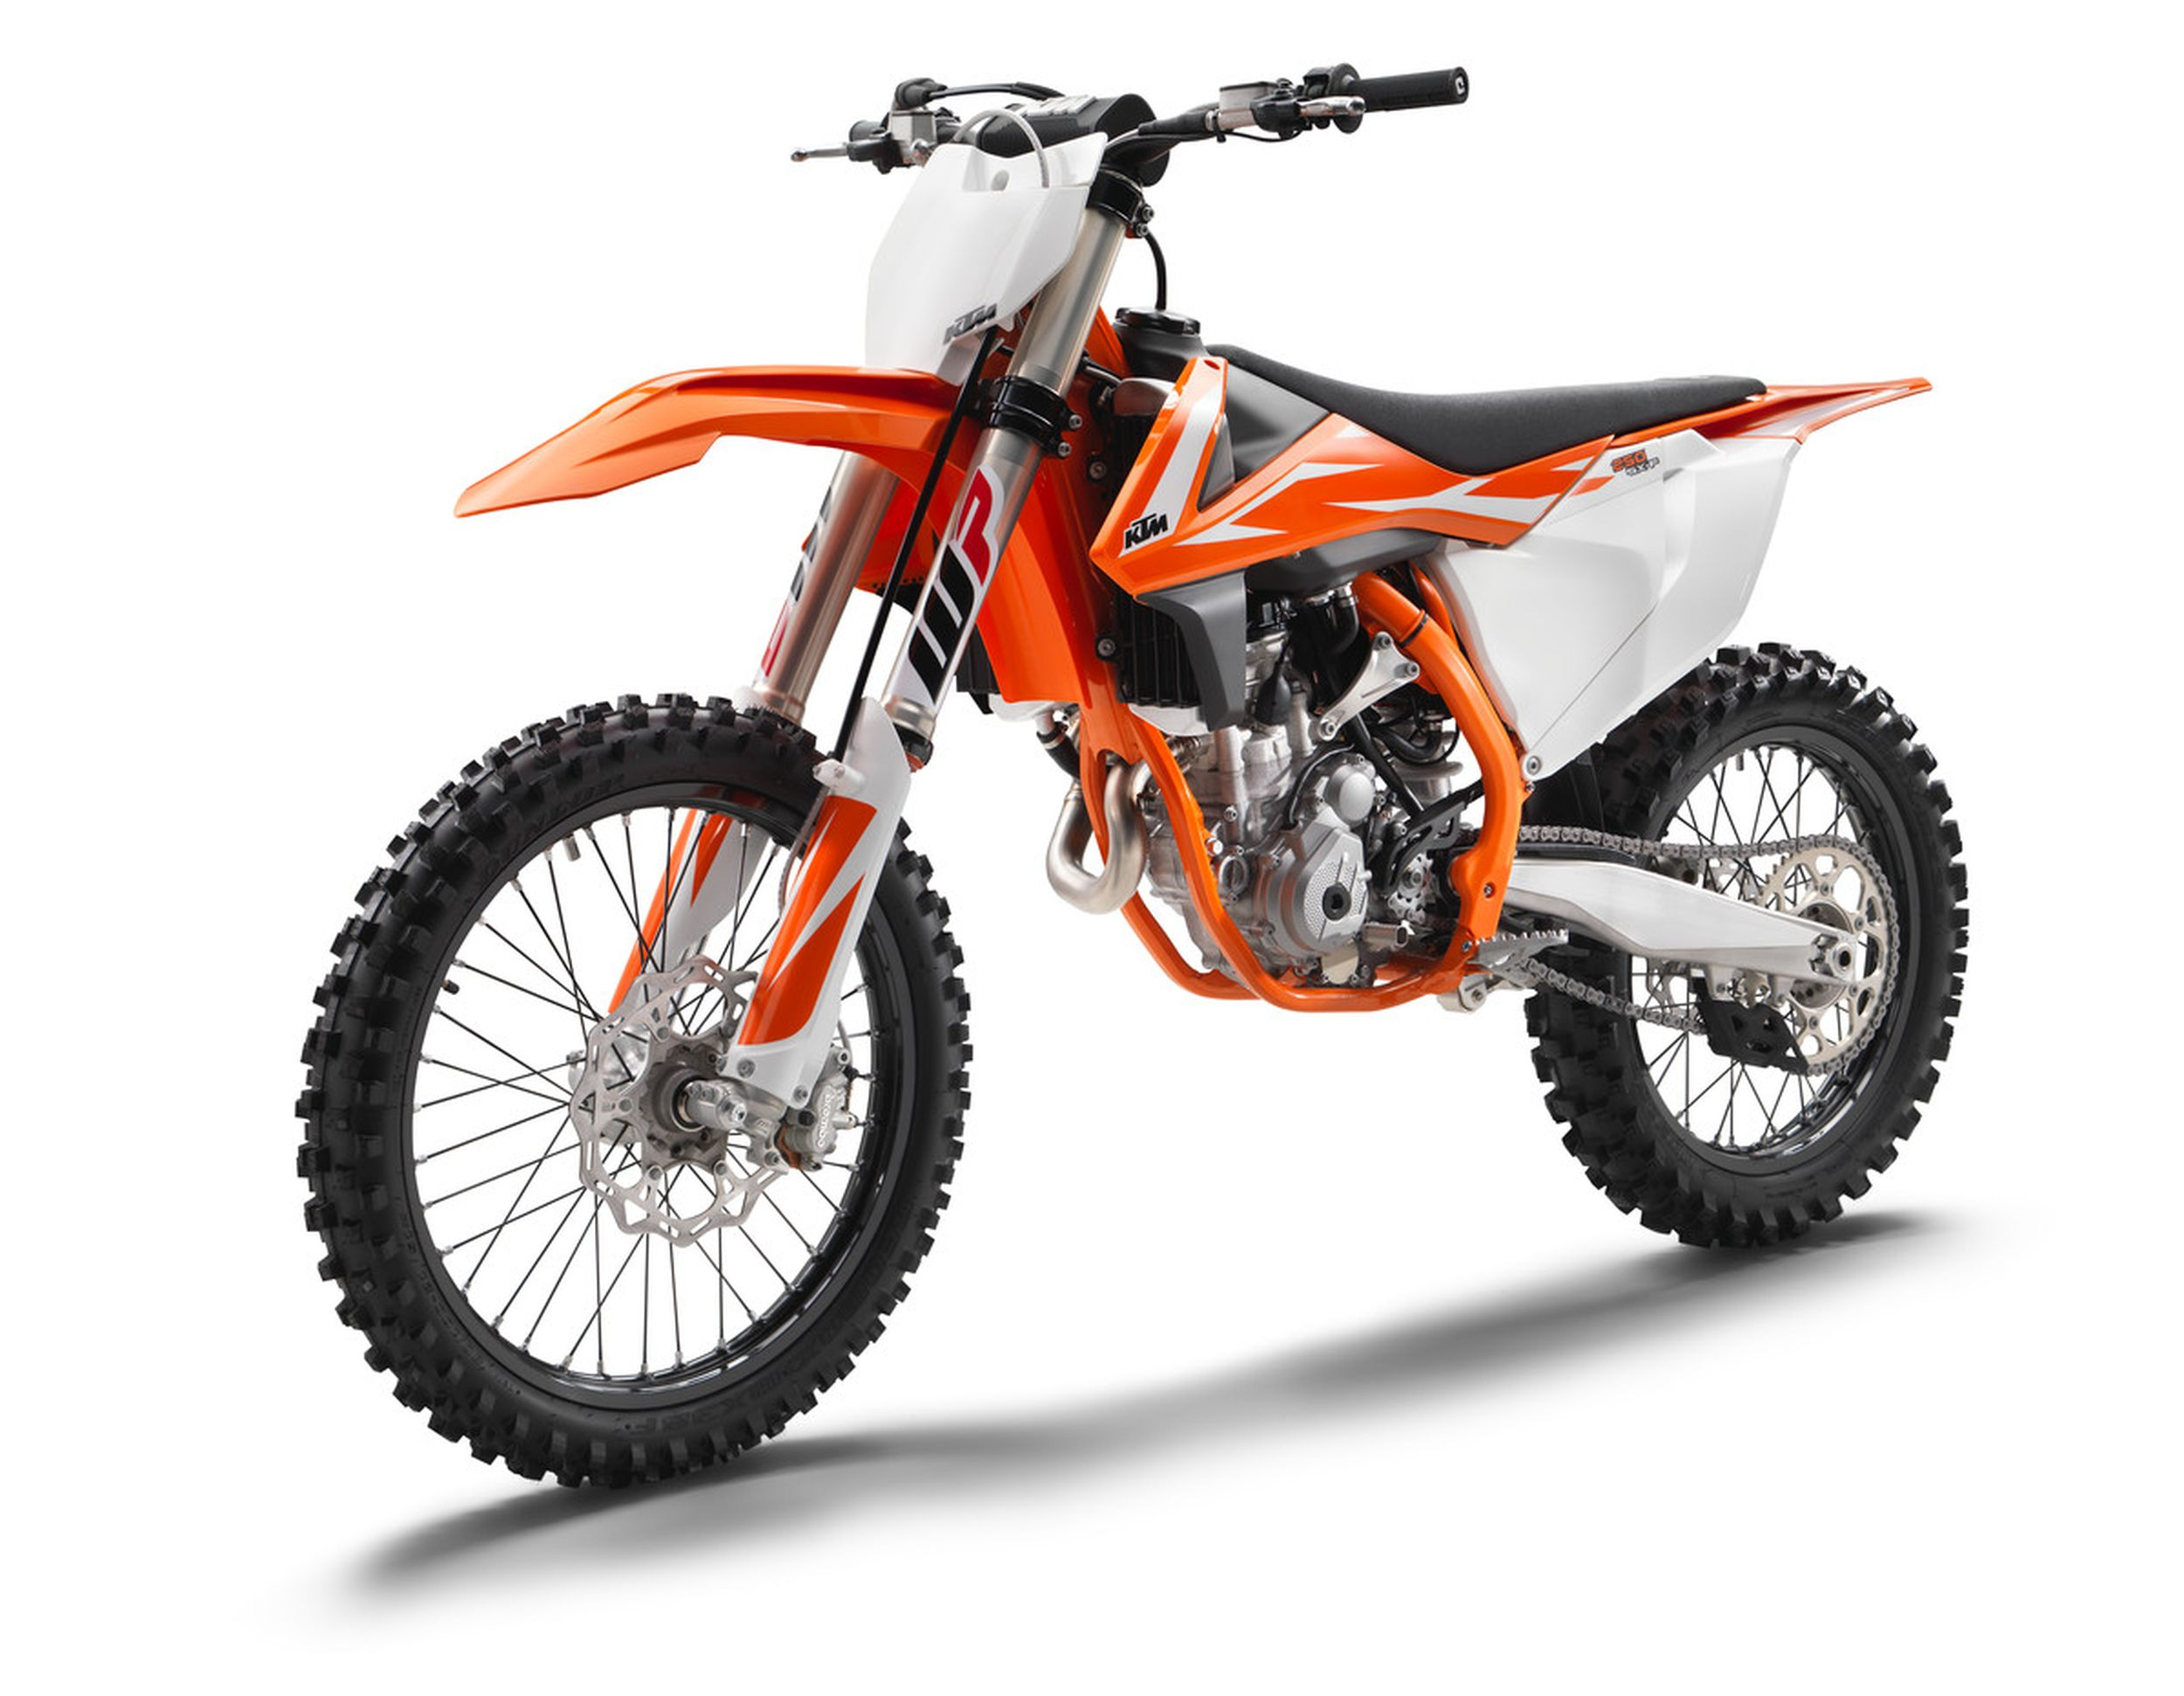 Ktm 250 Sx F All Technical Data Of The Model 250 Sx F From Ktm